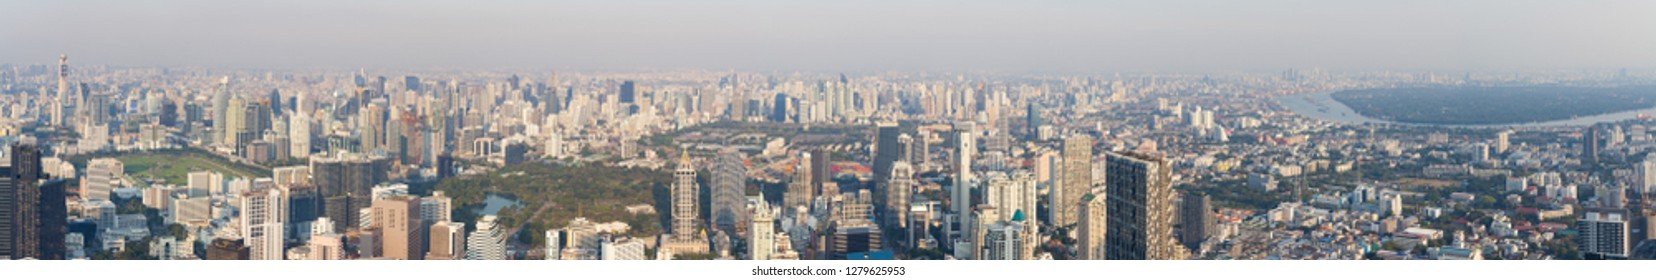 Bangkok / Thailand - December 19 2018: 360 Panoramic view of the Bangkok city Located at the top of King Power Mahanakhon Building, Mahanakhon skywalk, observation deck 314 meters the peak glass tray